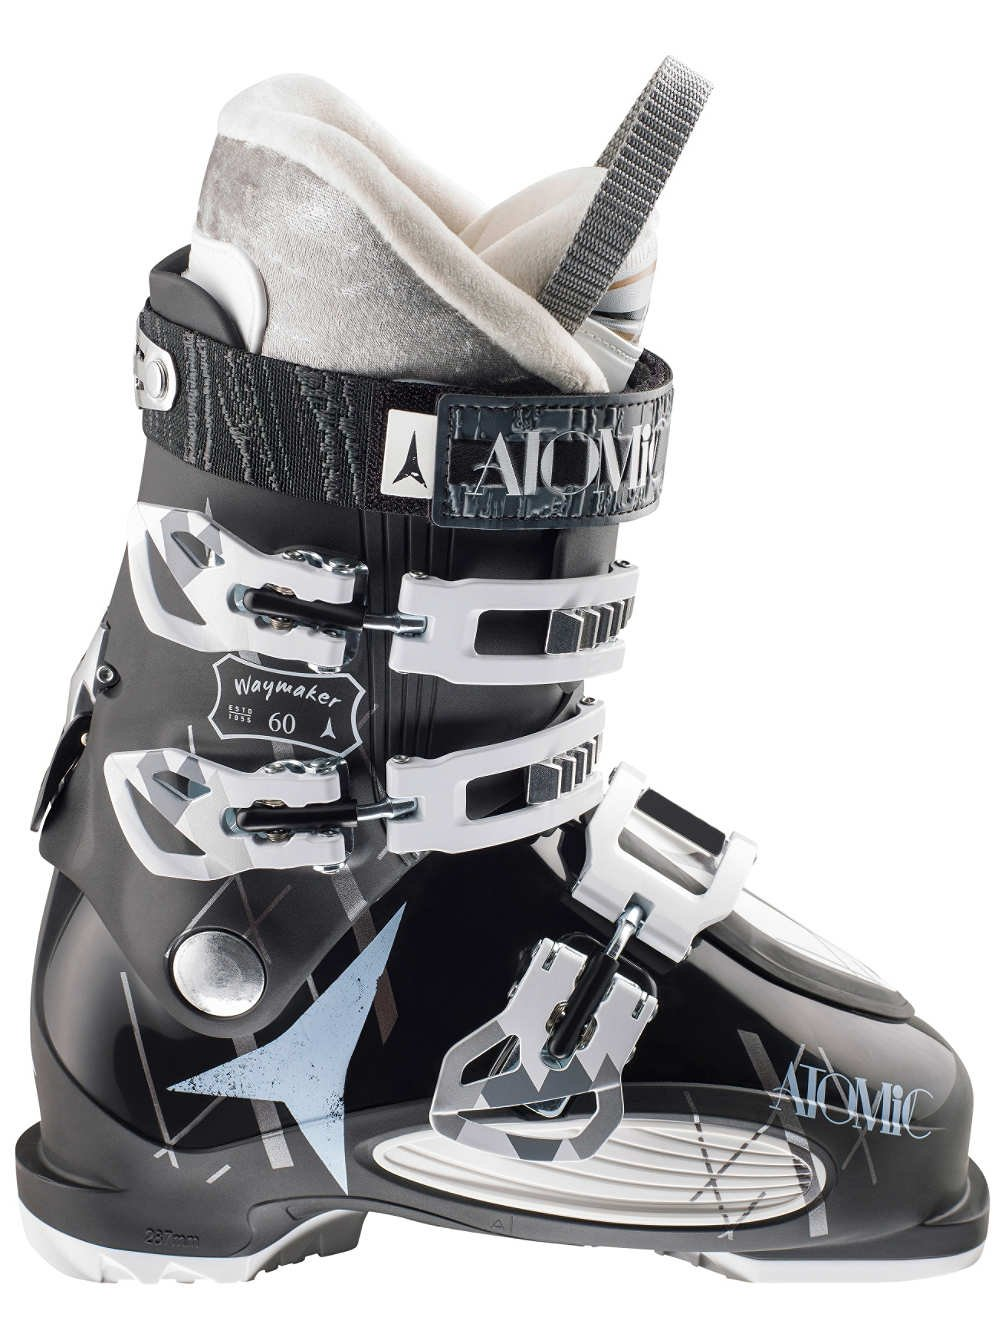 Ski Boot Women Atomic Waymaker 60 2015: Amazon co uk: Sports